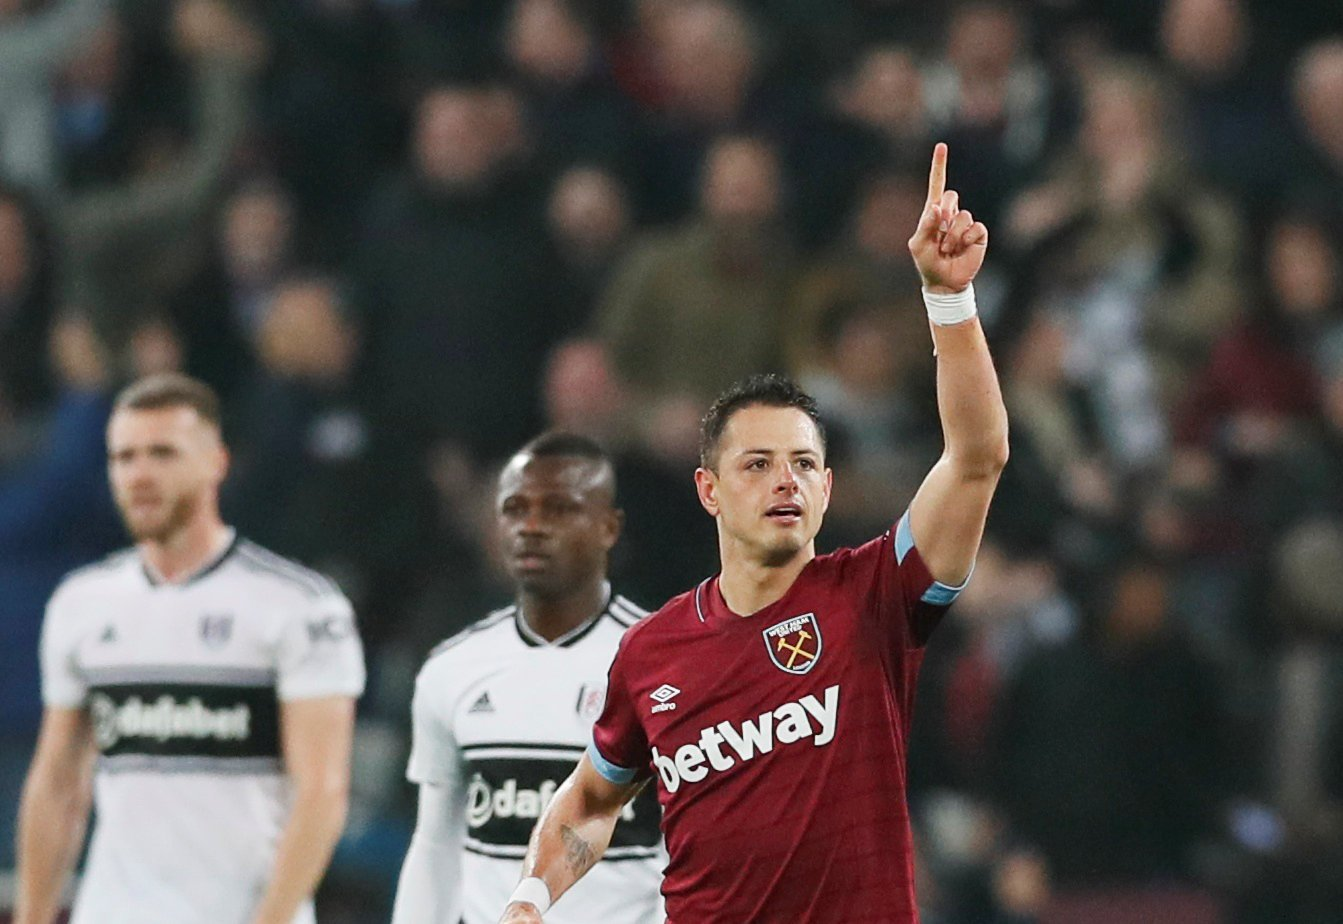 'It's cheating': Jamie Carragher slams Javier Hernandez for handball goal against Fulham